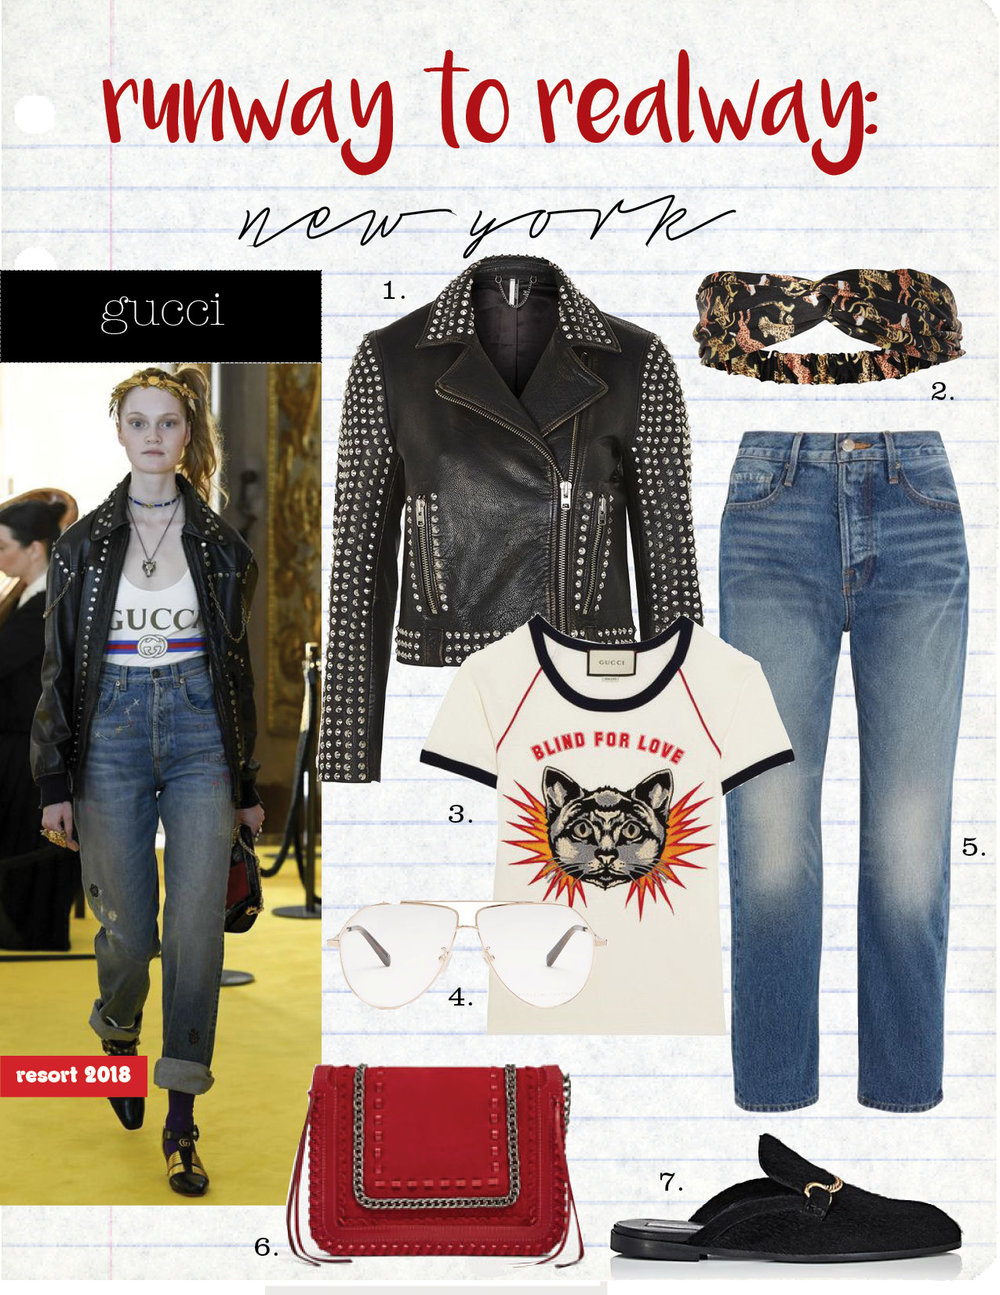 1. topshop studded leather biker jacket, $420,  topshop.com  2. topshop tiger silky headband, $12,  topshop.com  3. gucci appliqued printed cotton-jersey T-shirt, $990,  net-a-porter.com  4. stella mccartney oversized aviator glasses, $268,  matchesfashion.com  5. frame le original cropped high-rise straight-leg jeans, $270,  net-a-porter.com  6. zara red leather cross body bag, $89,  zara.com  7. stella mccartney chain-strap faux-fur slipper slides, $640,  barneys.com